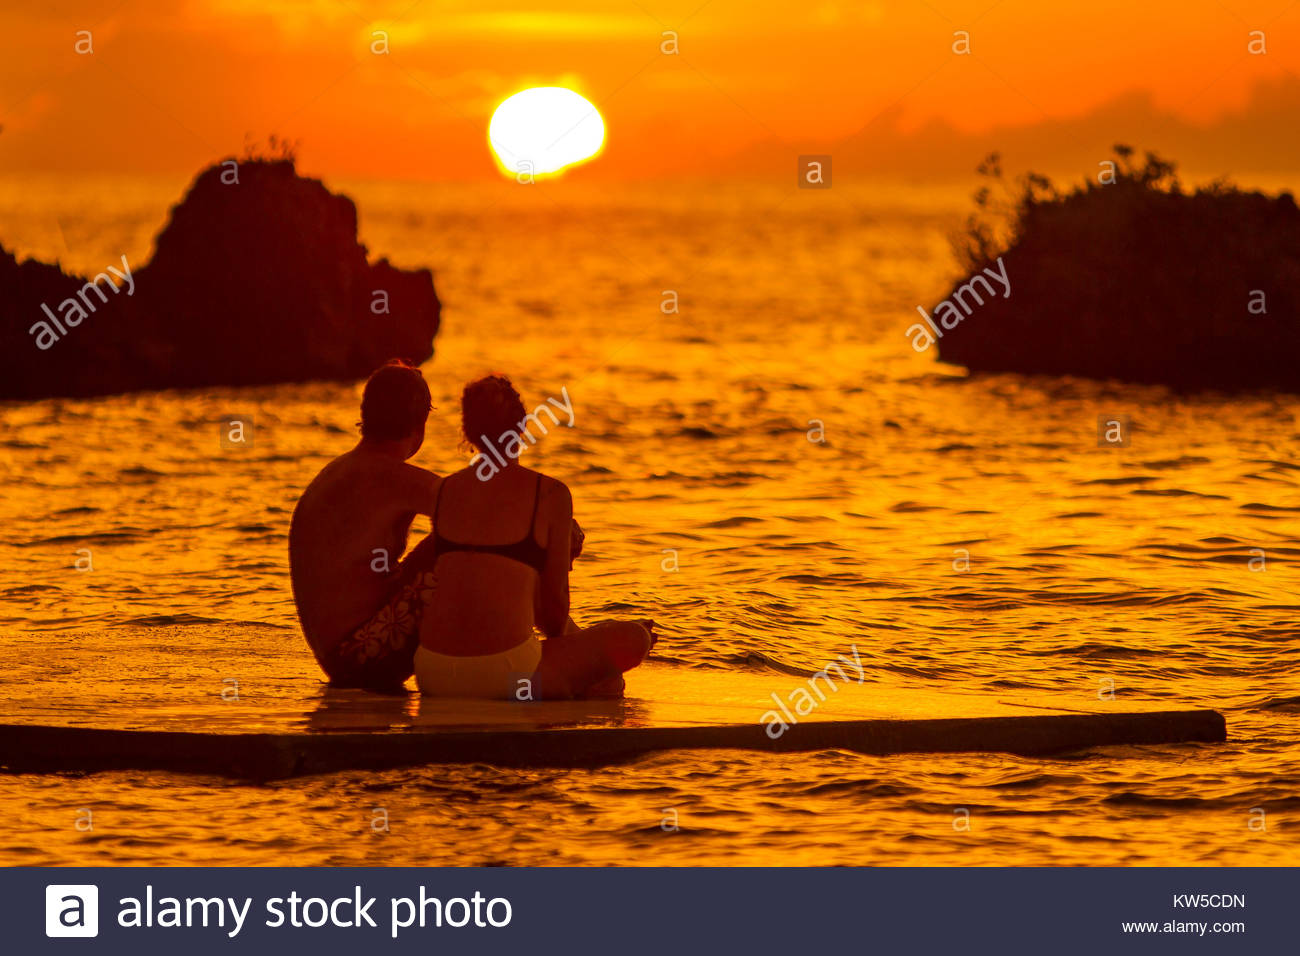 A silhouetted couple watch a romantic sunset from a floating dock in Ocho Rios, Jamaica. - Stock Image